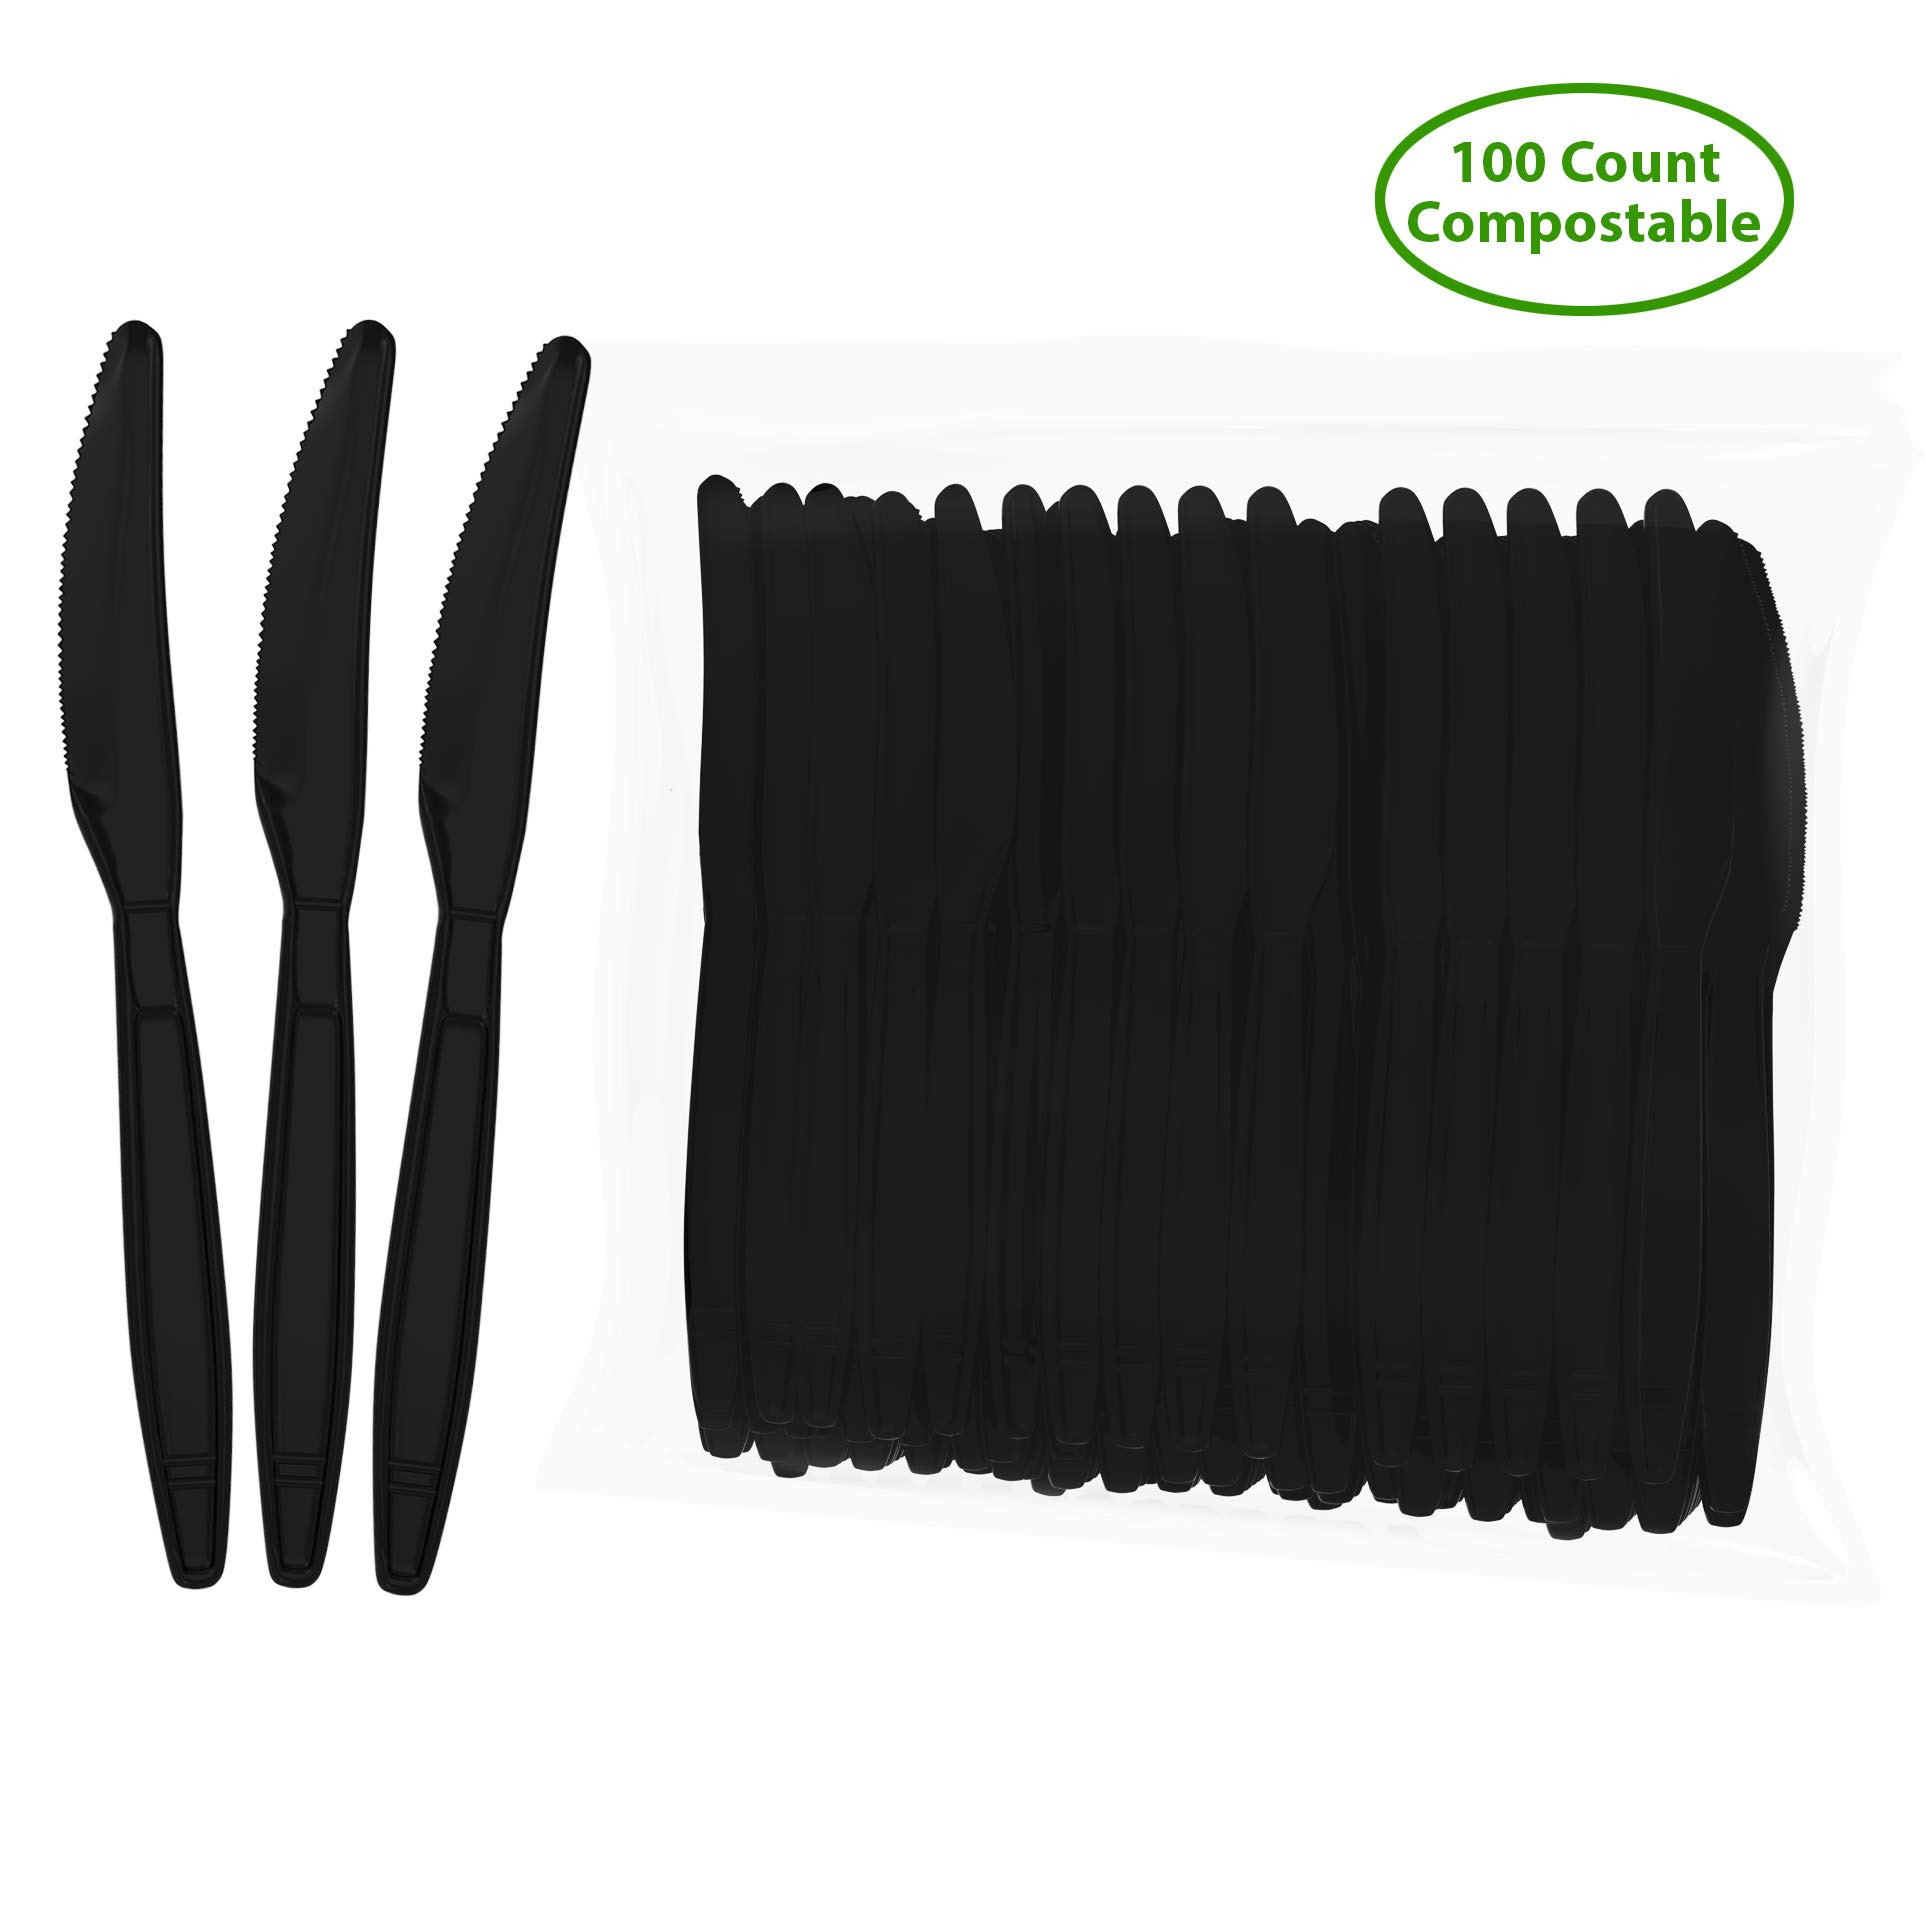 """Biodegradable Compostable Bio-based Disposable Knife - 100 Knives Large 7.5"""" Black - Heavy Duty Heat Resistant Eco Friendly Utensils (100 Count, Knives, Black)"""